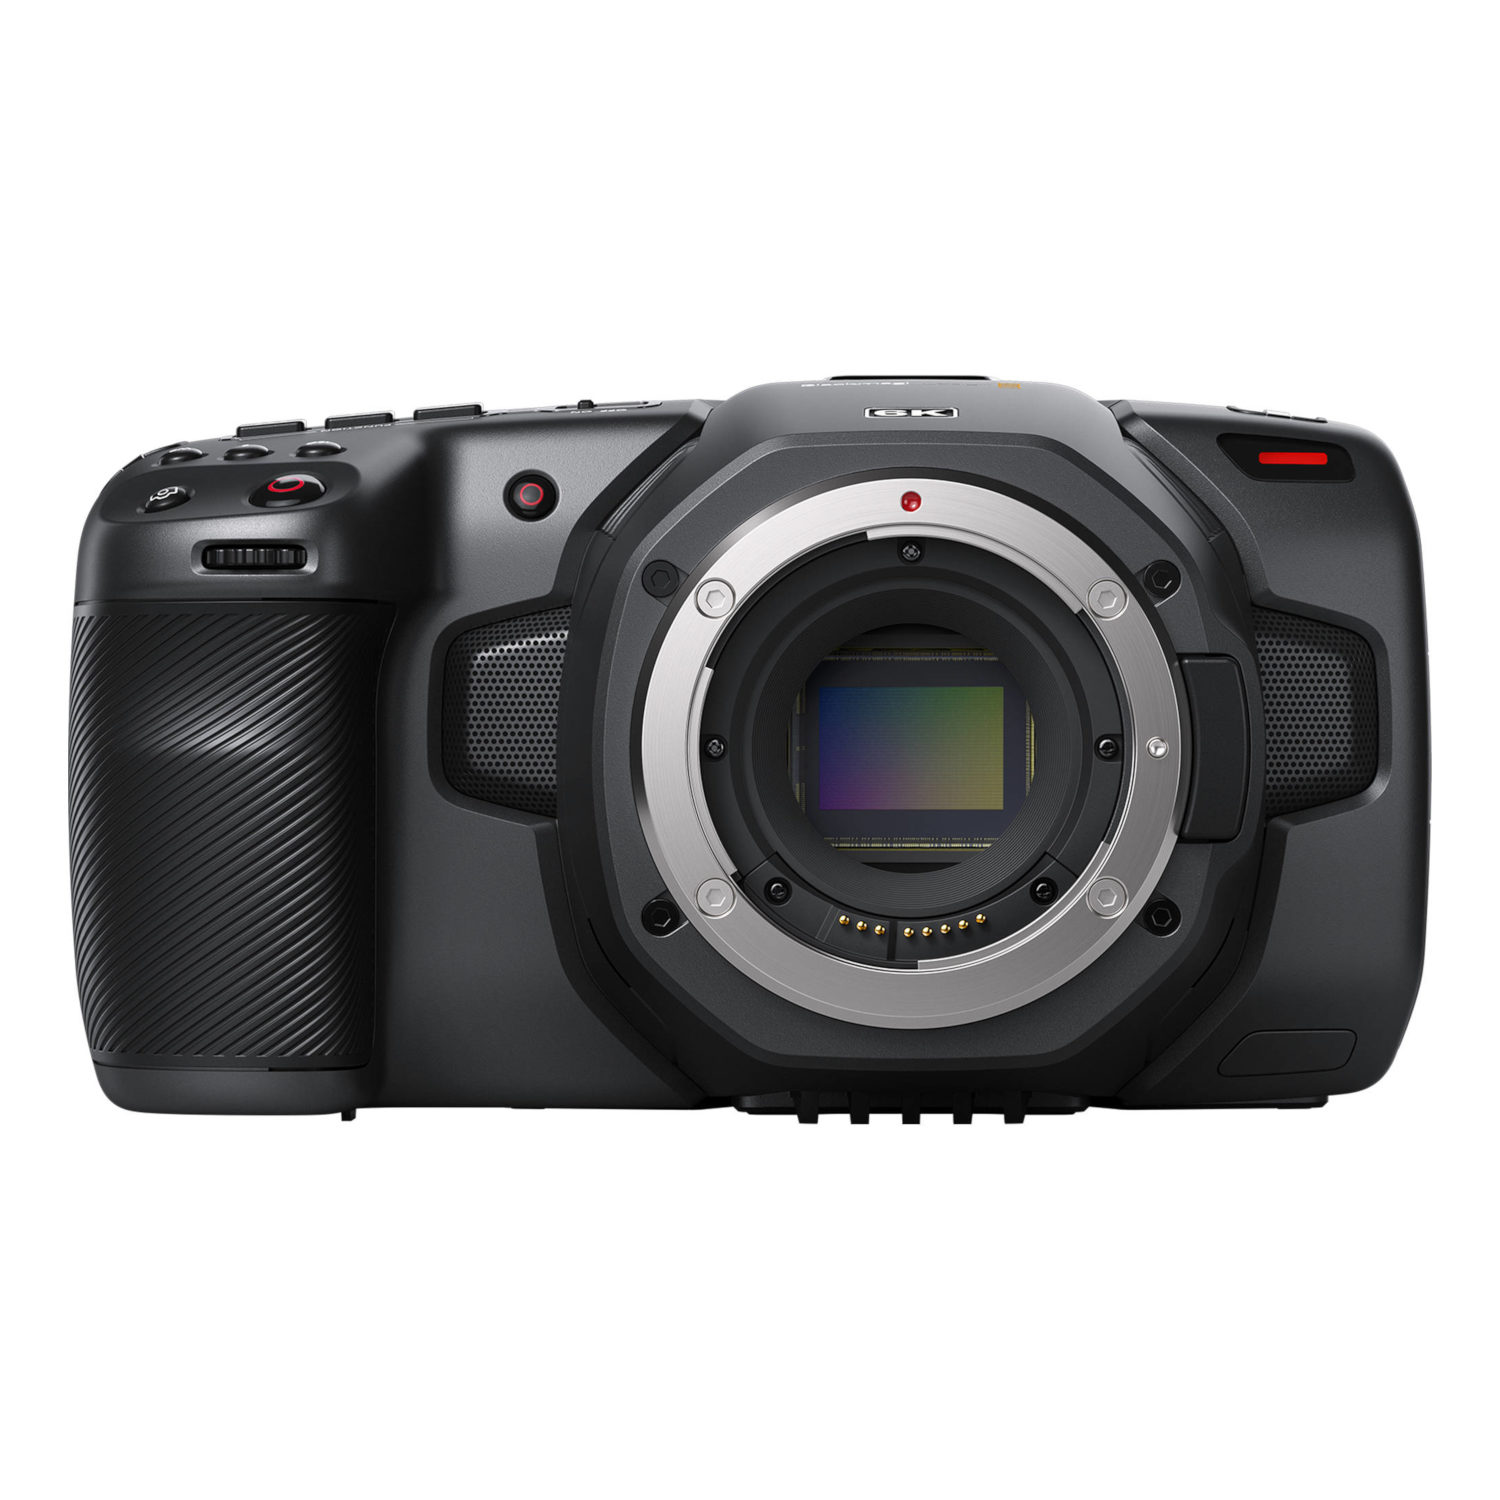 Corpo da câmera de vídeo Blackmagic Pocket Cinema 6K (EF)